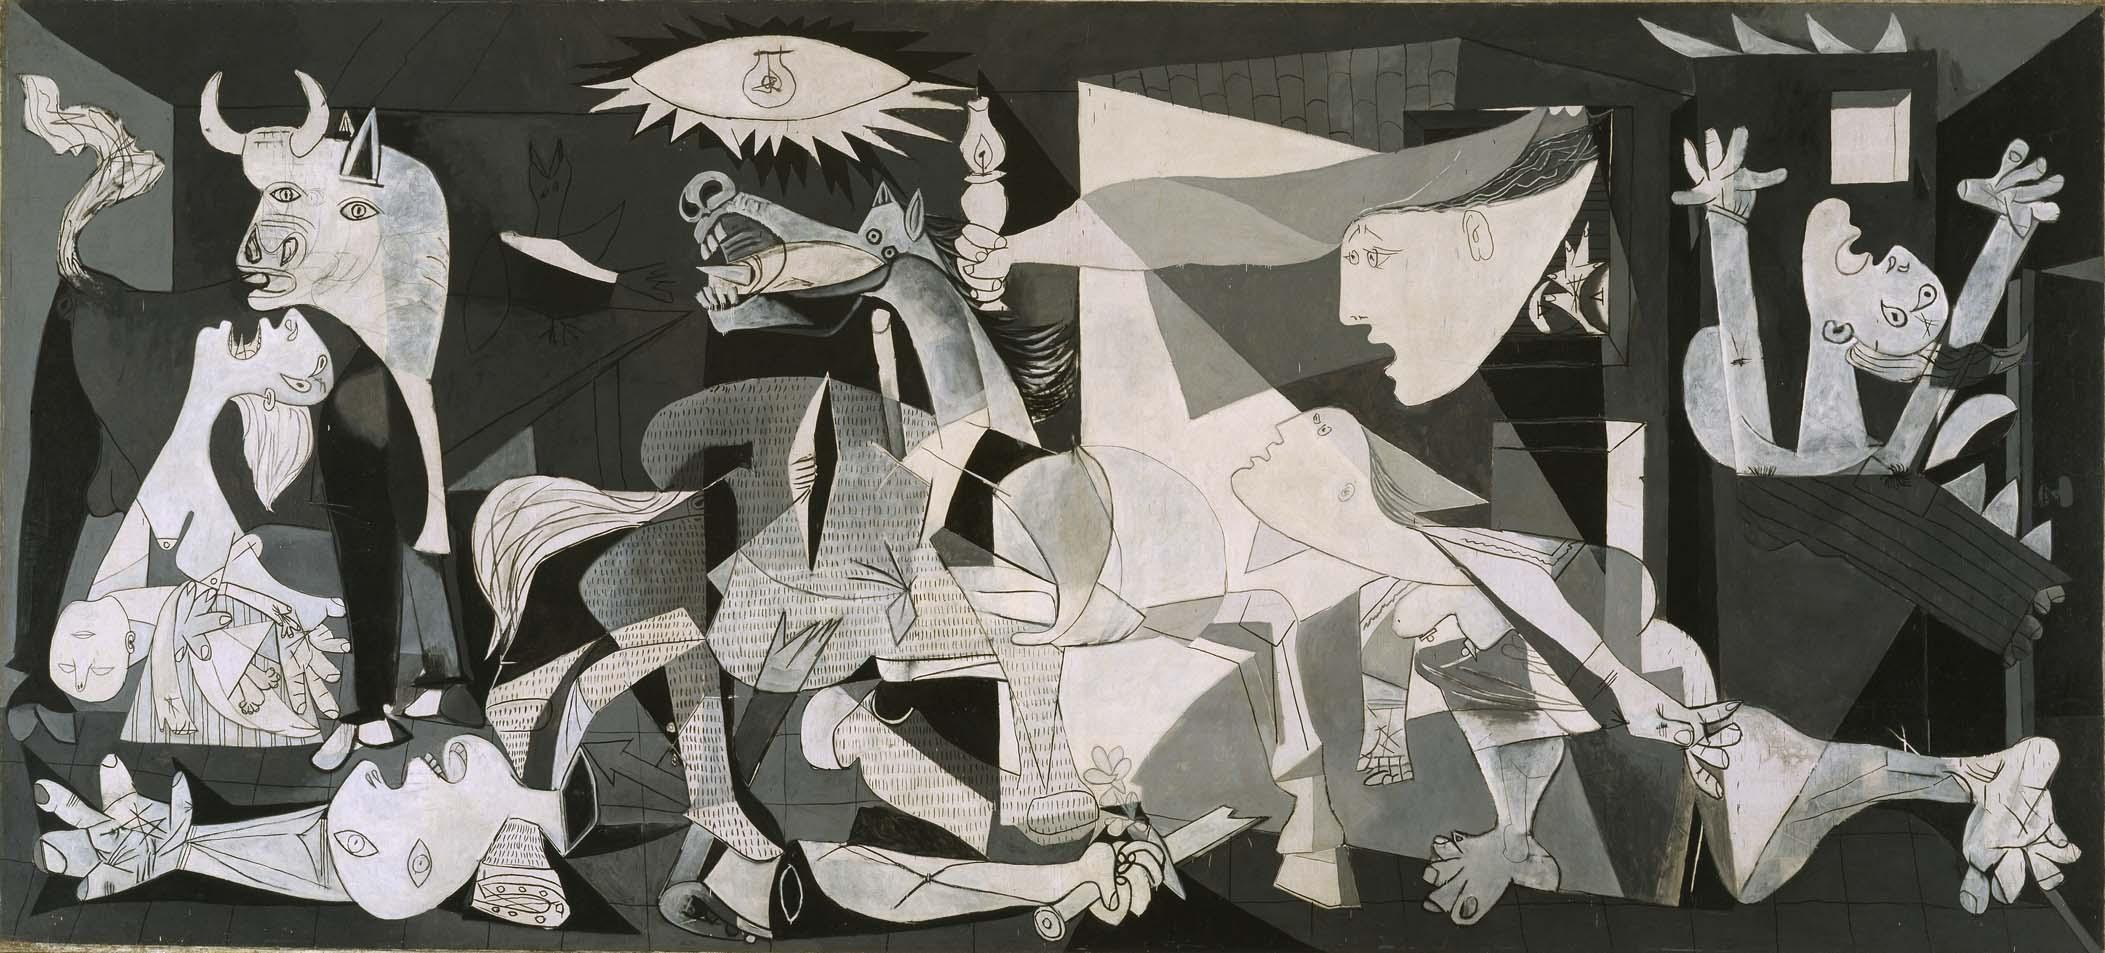 Exposici³n Pity and Terror Picasso Pablo Pablo Ruiz Picasso